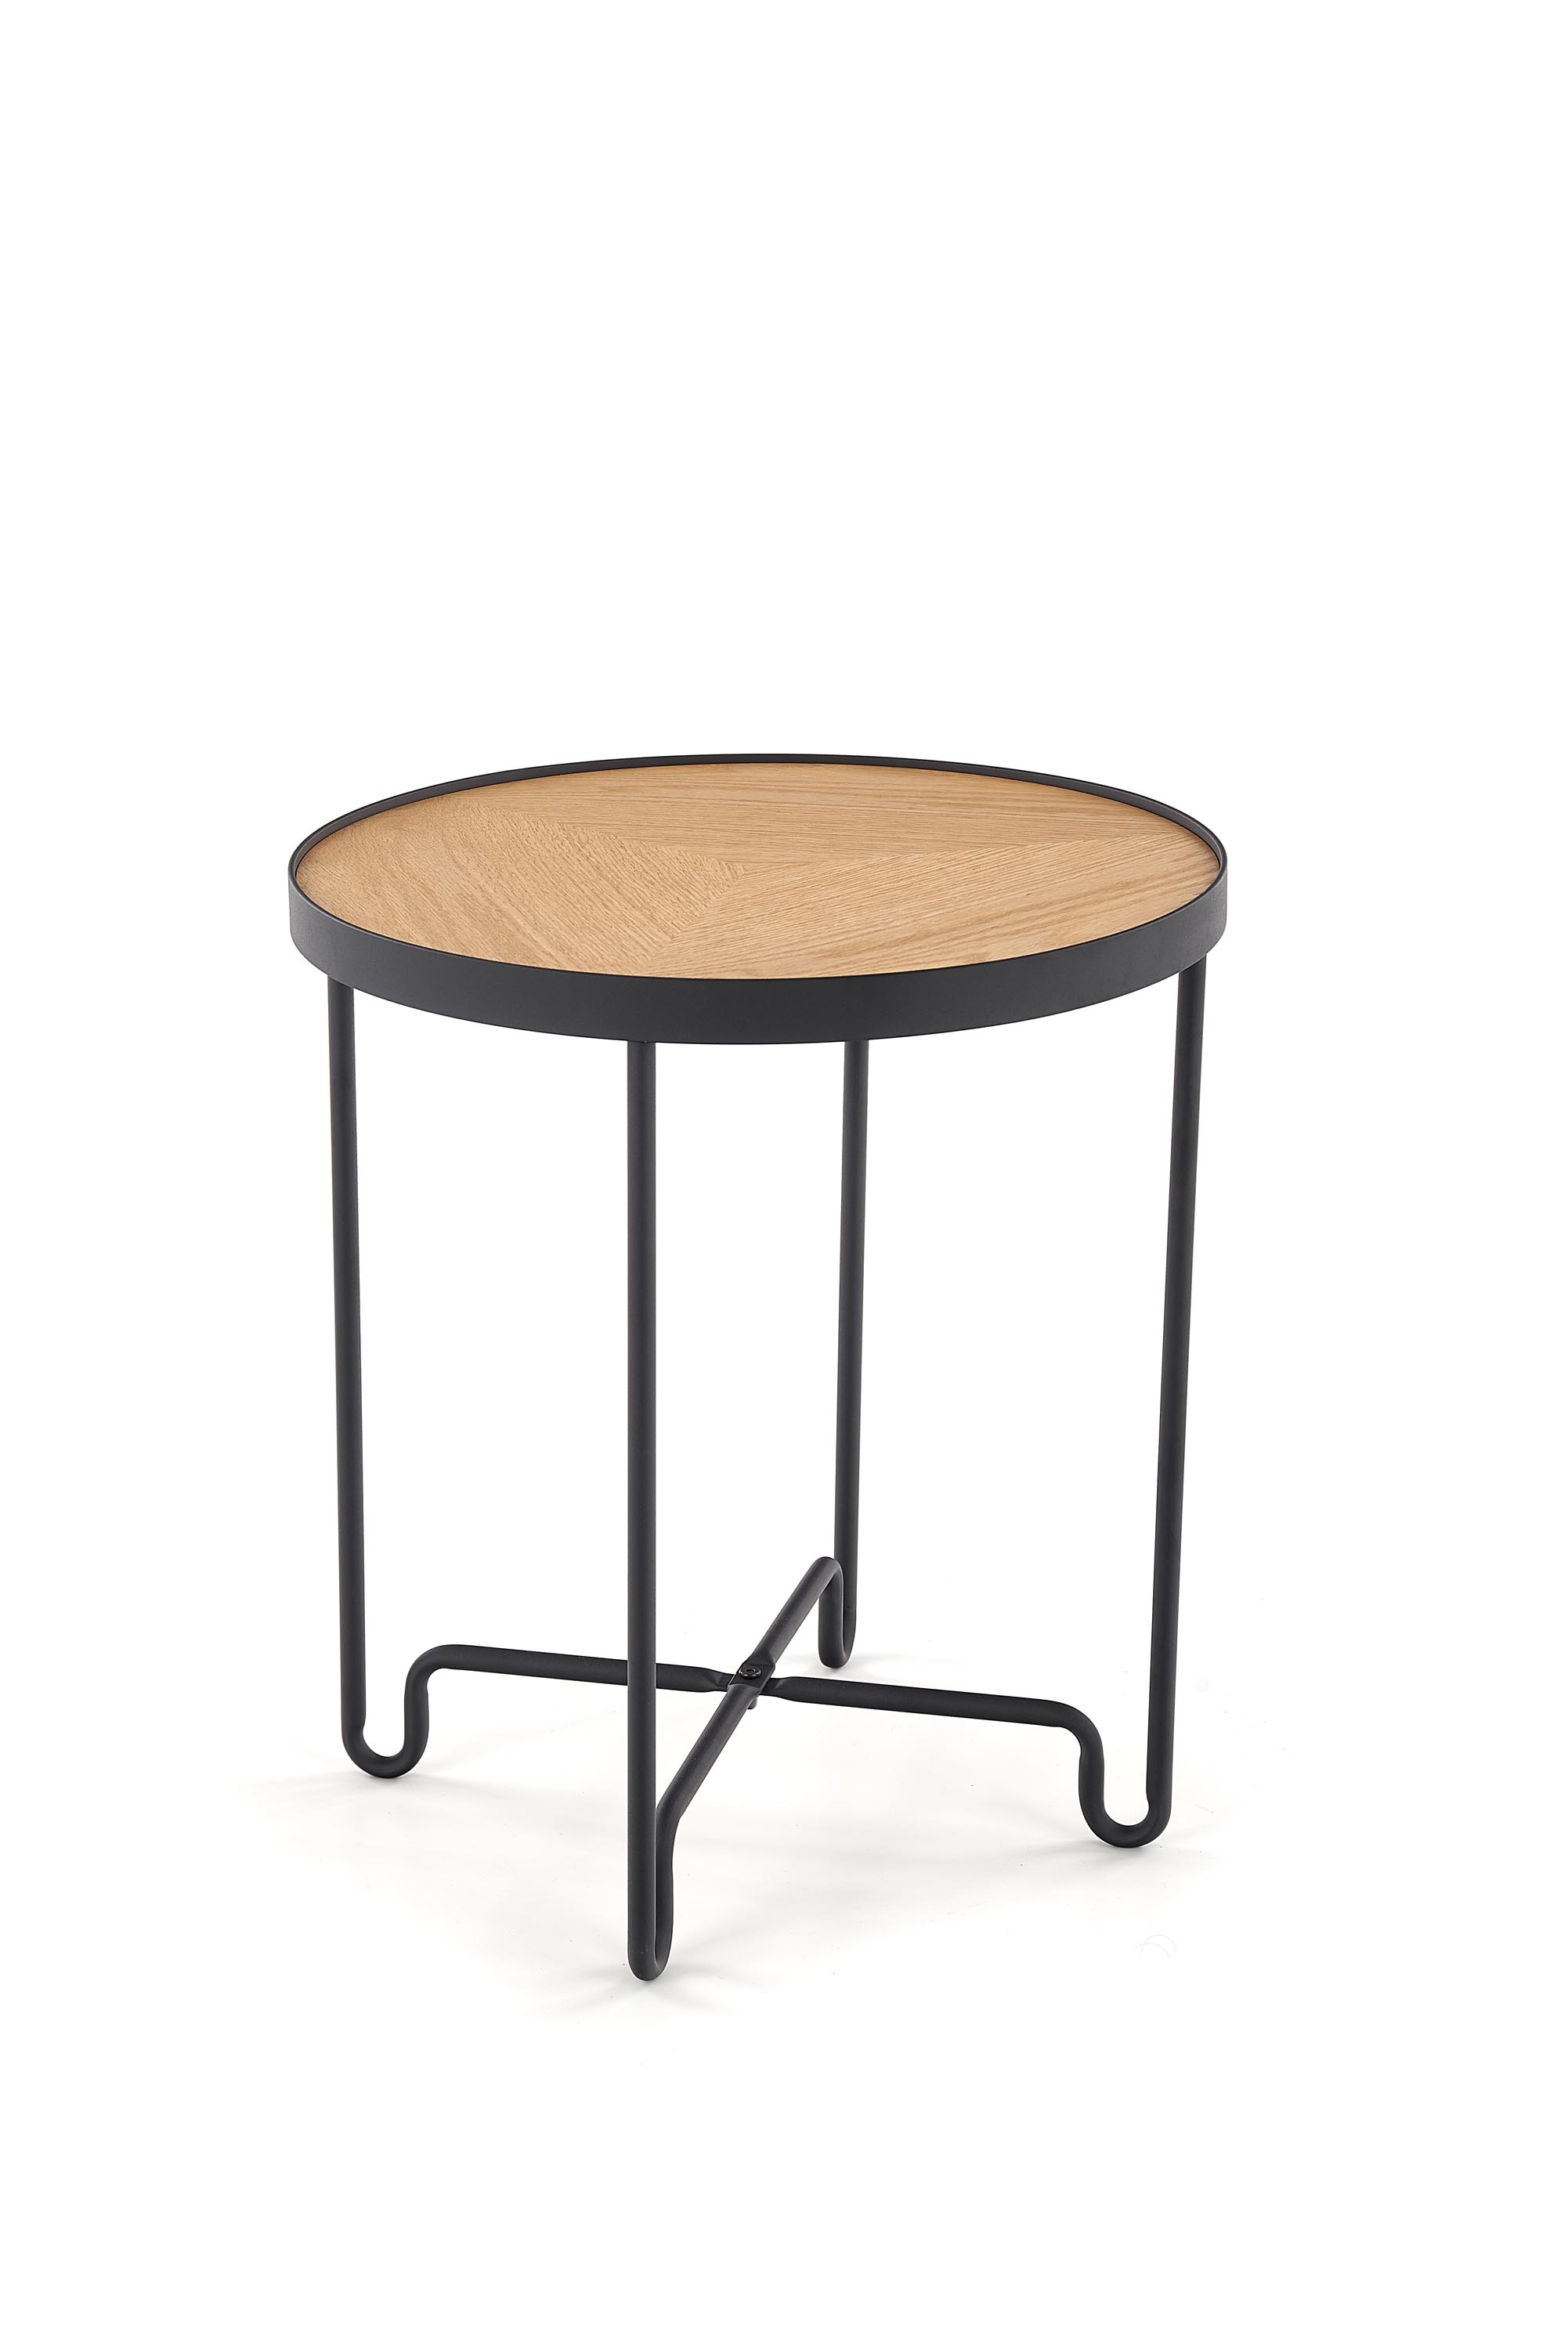 Masa de cafea din MDF si metal Elva Natural / Black, Ø44xH50 cm imagine